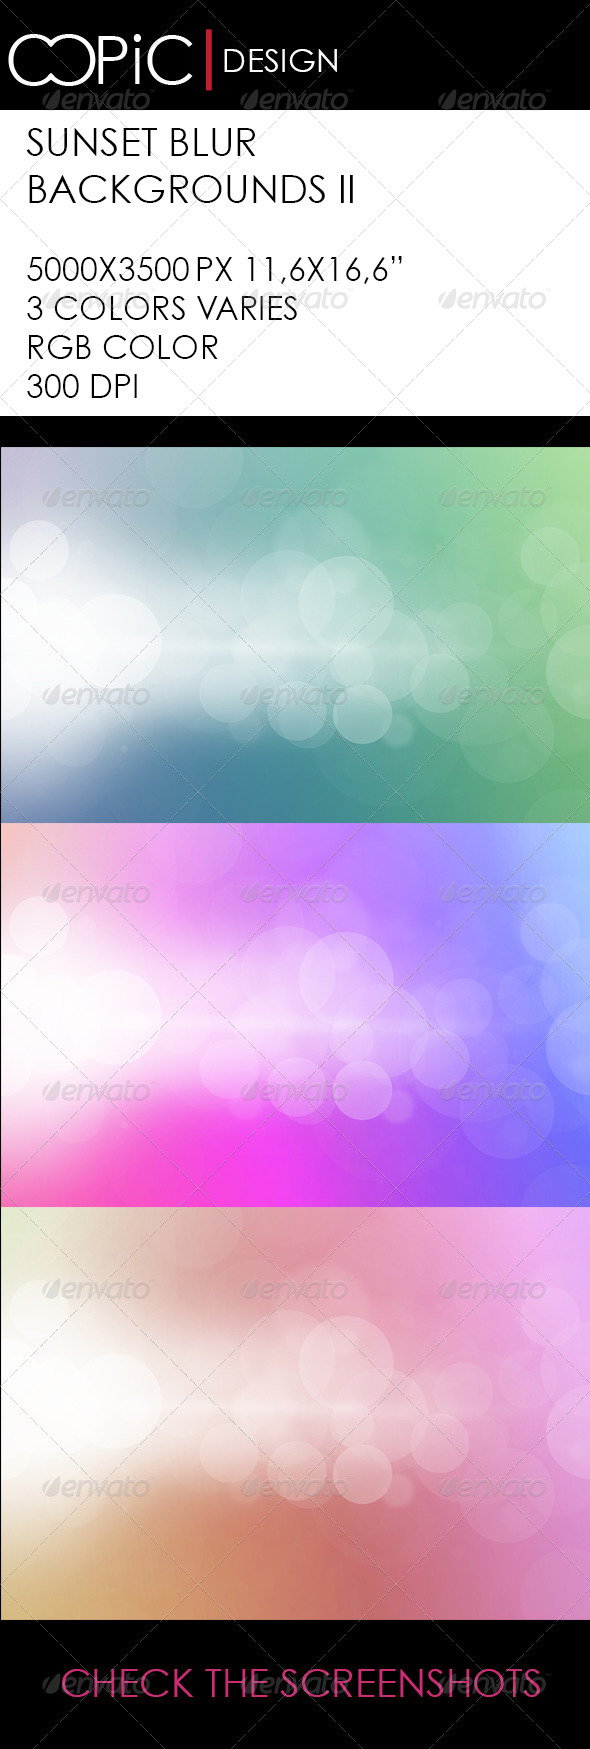 Sunset Blur Background II - Backgrounds Graphics